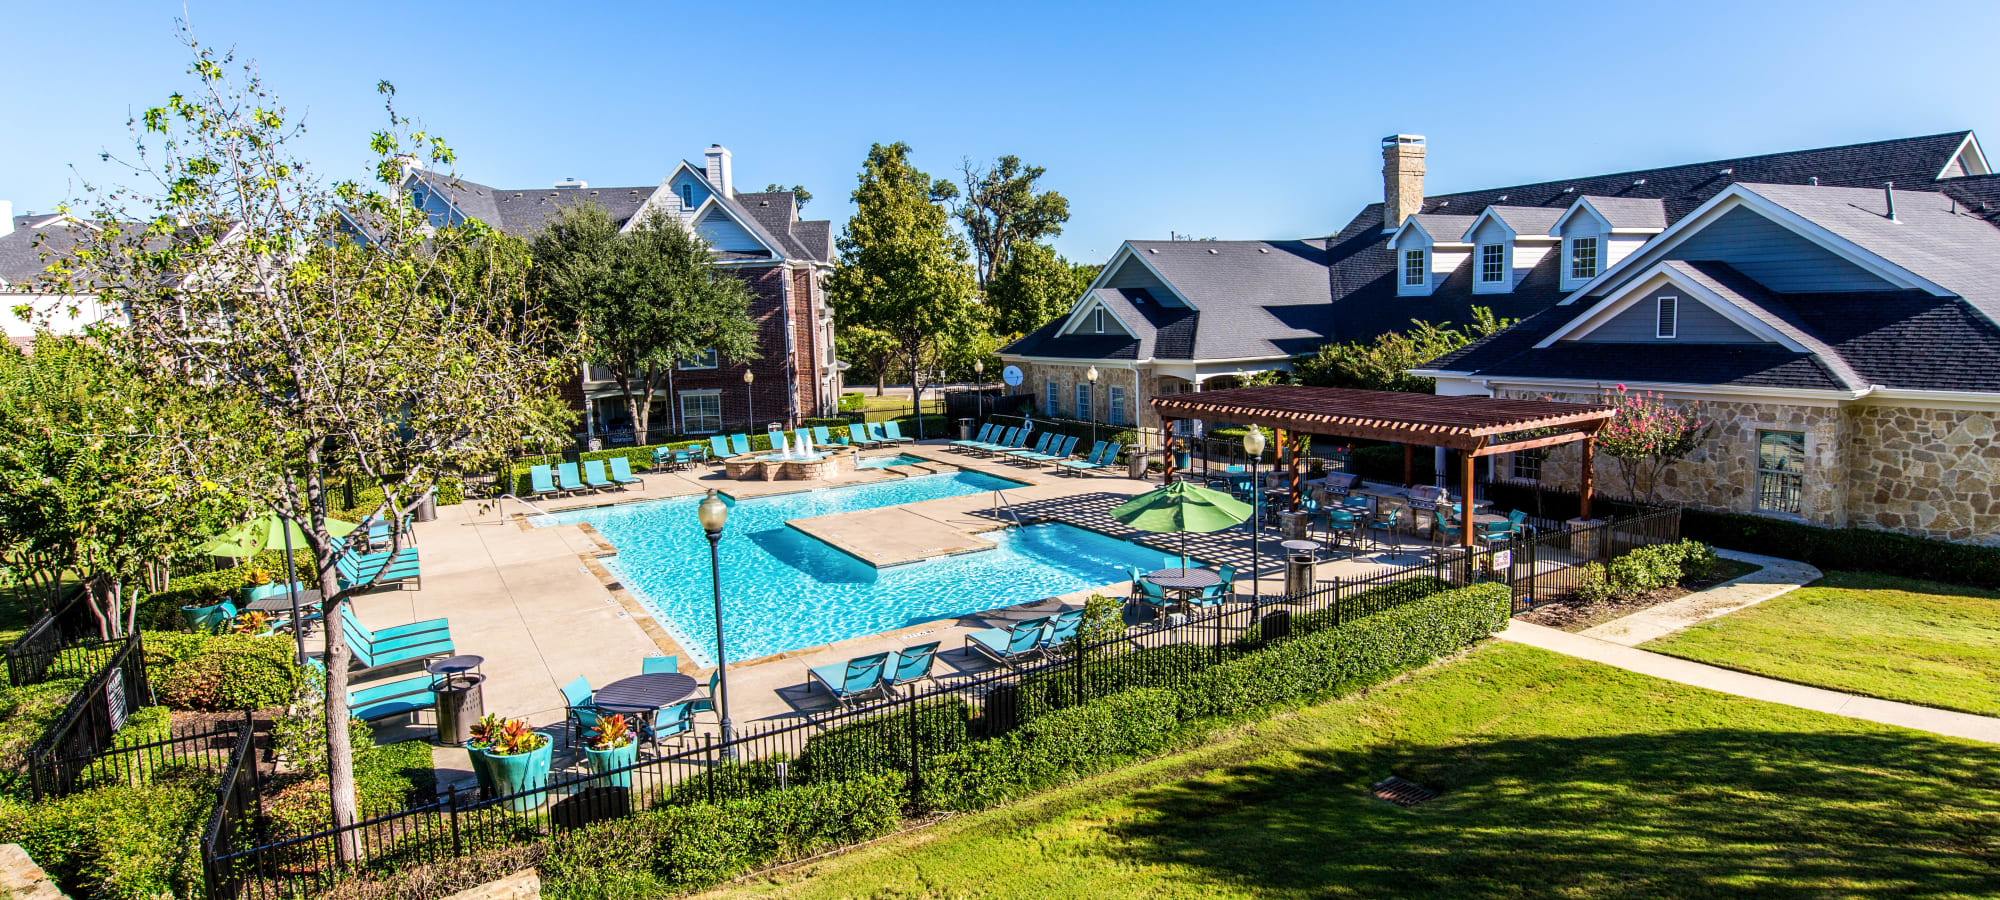 Apartments at Marquis at Silver Oaks in Grapevine, Texas